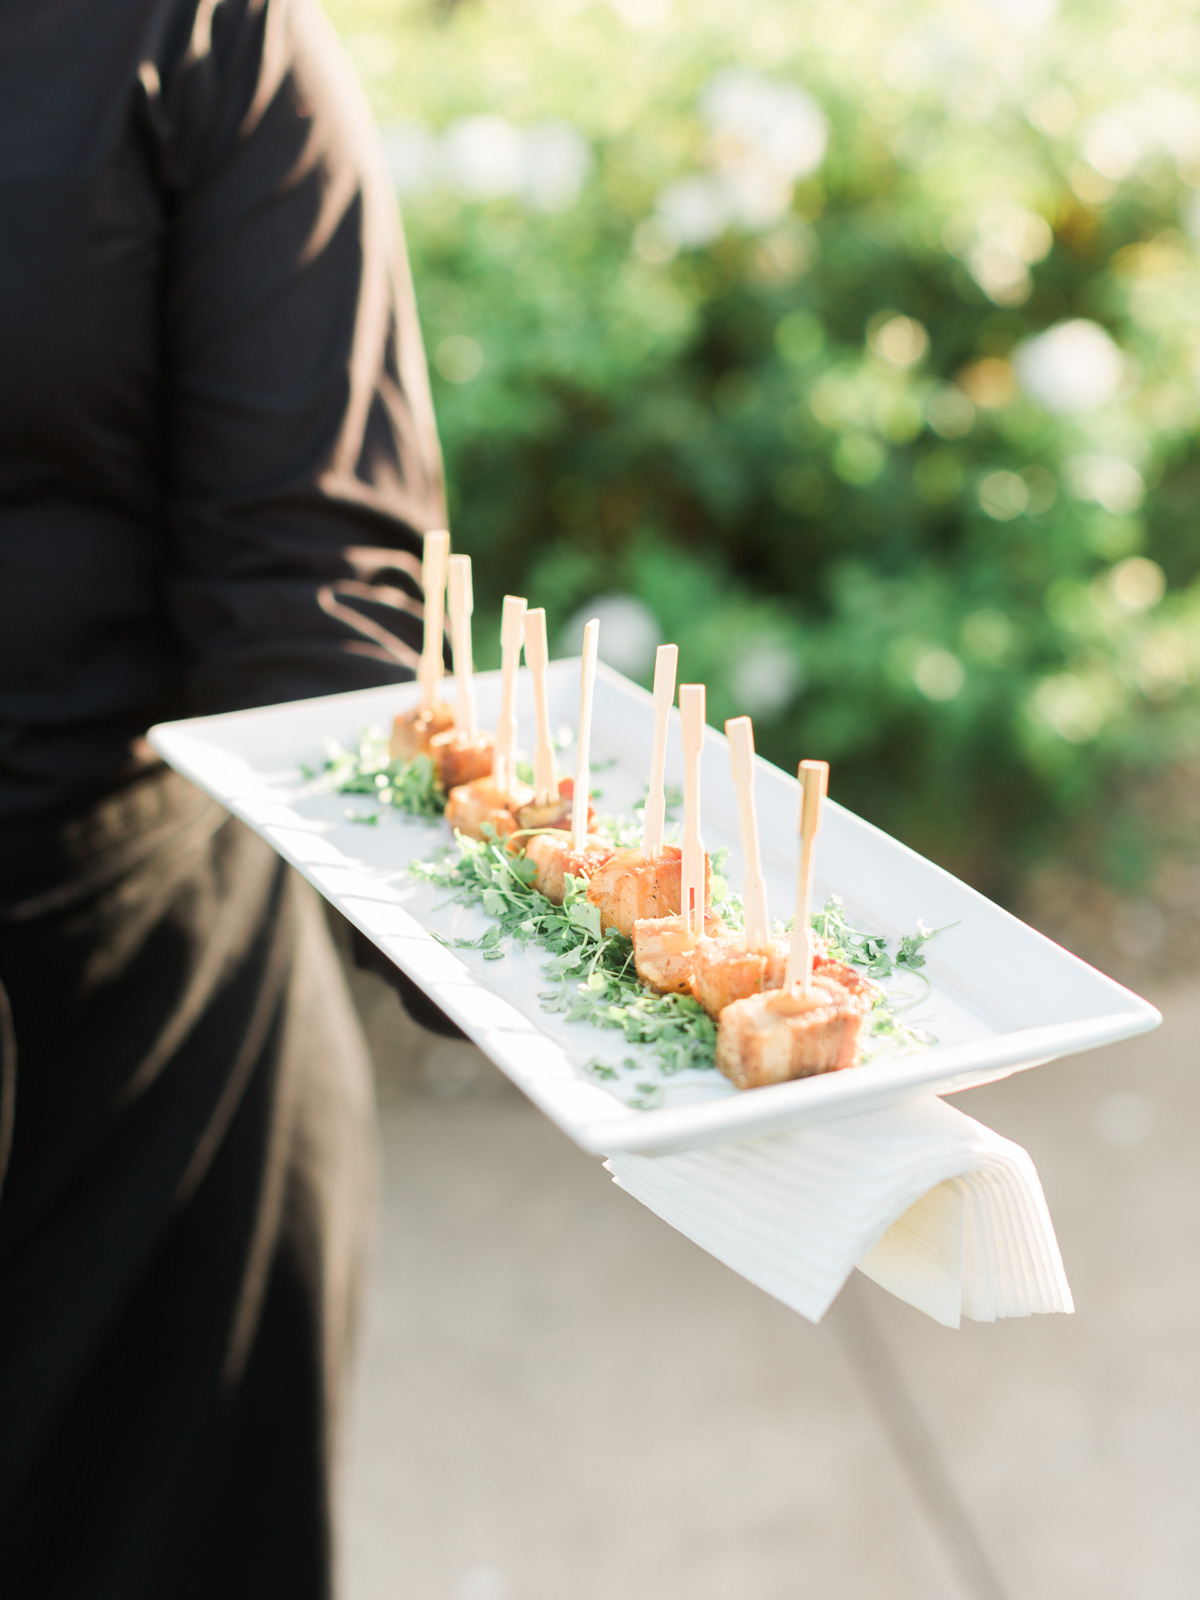 Beautiful appetizers during cocktail hour at Weins Family Cellars